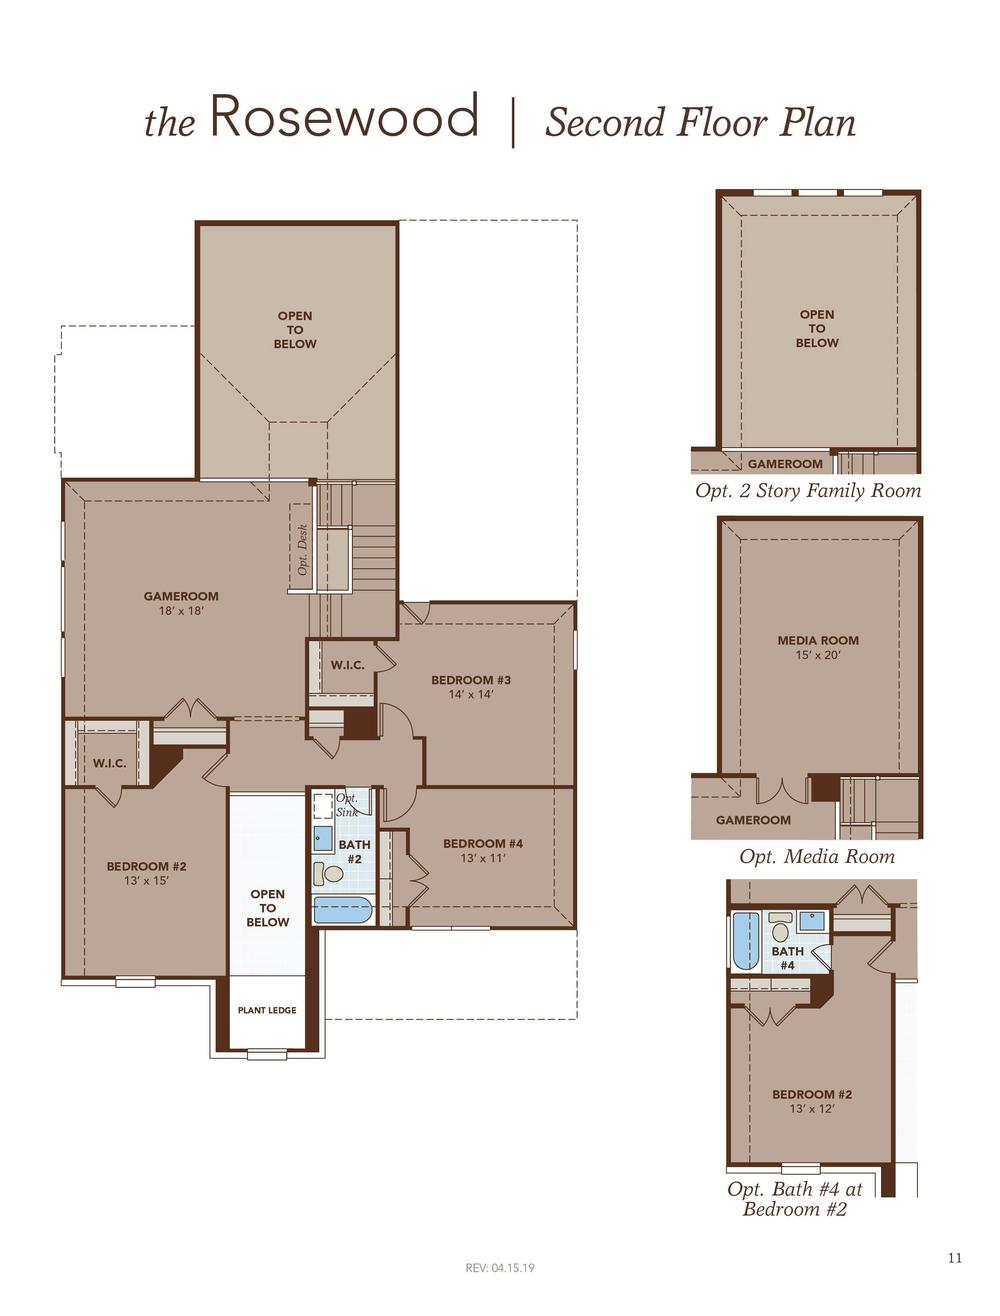 Rosewood Second Floor Plan